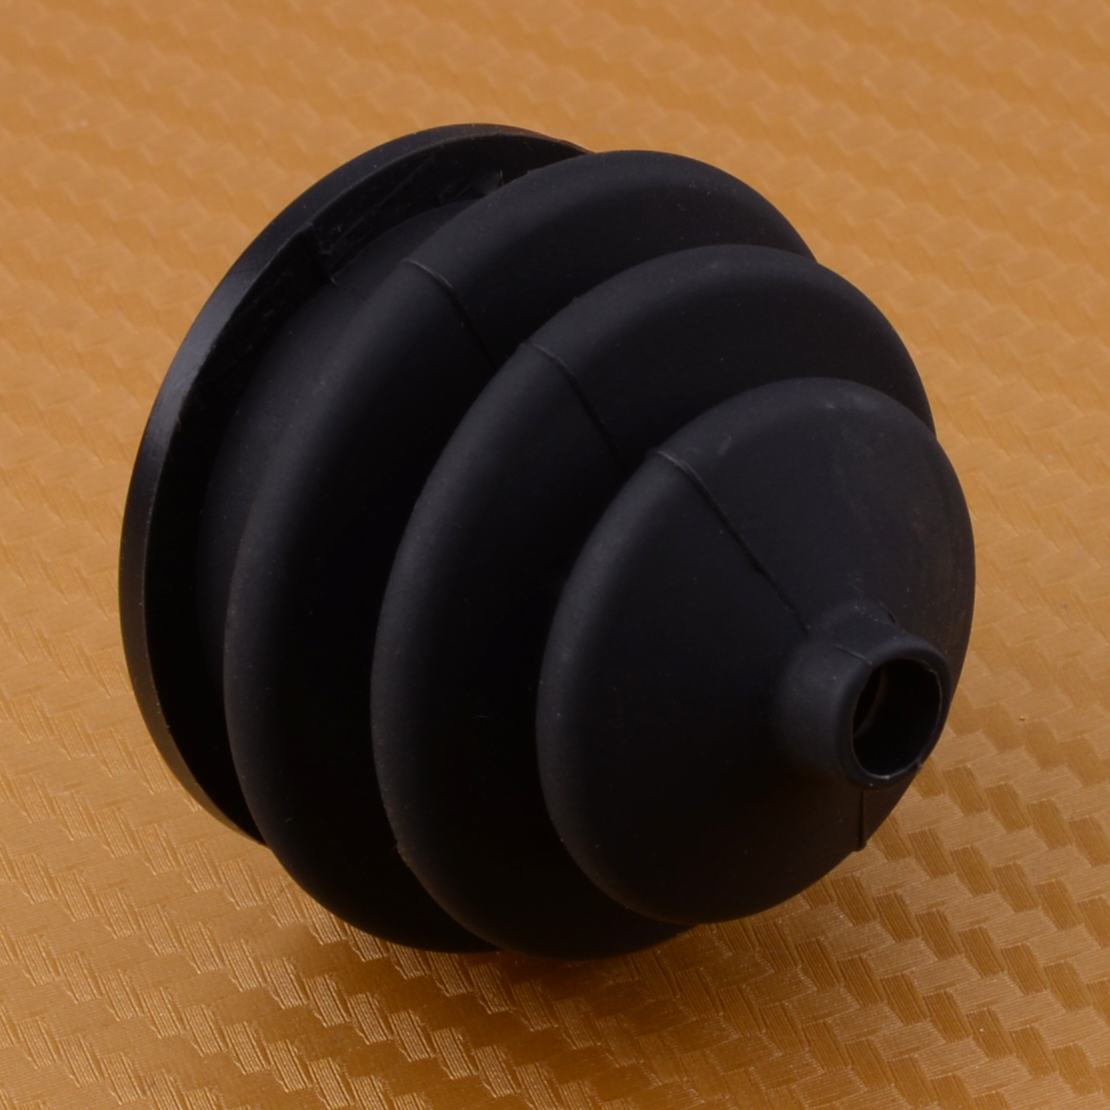 LETAOSK New  Wheelchair Rubber Shark Drive Joystick Mobility Knob Gaiter Button Controller Power Option Tilt